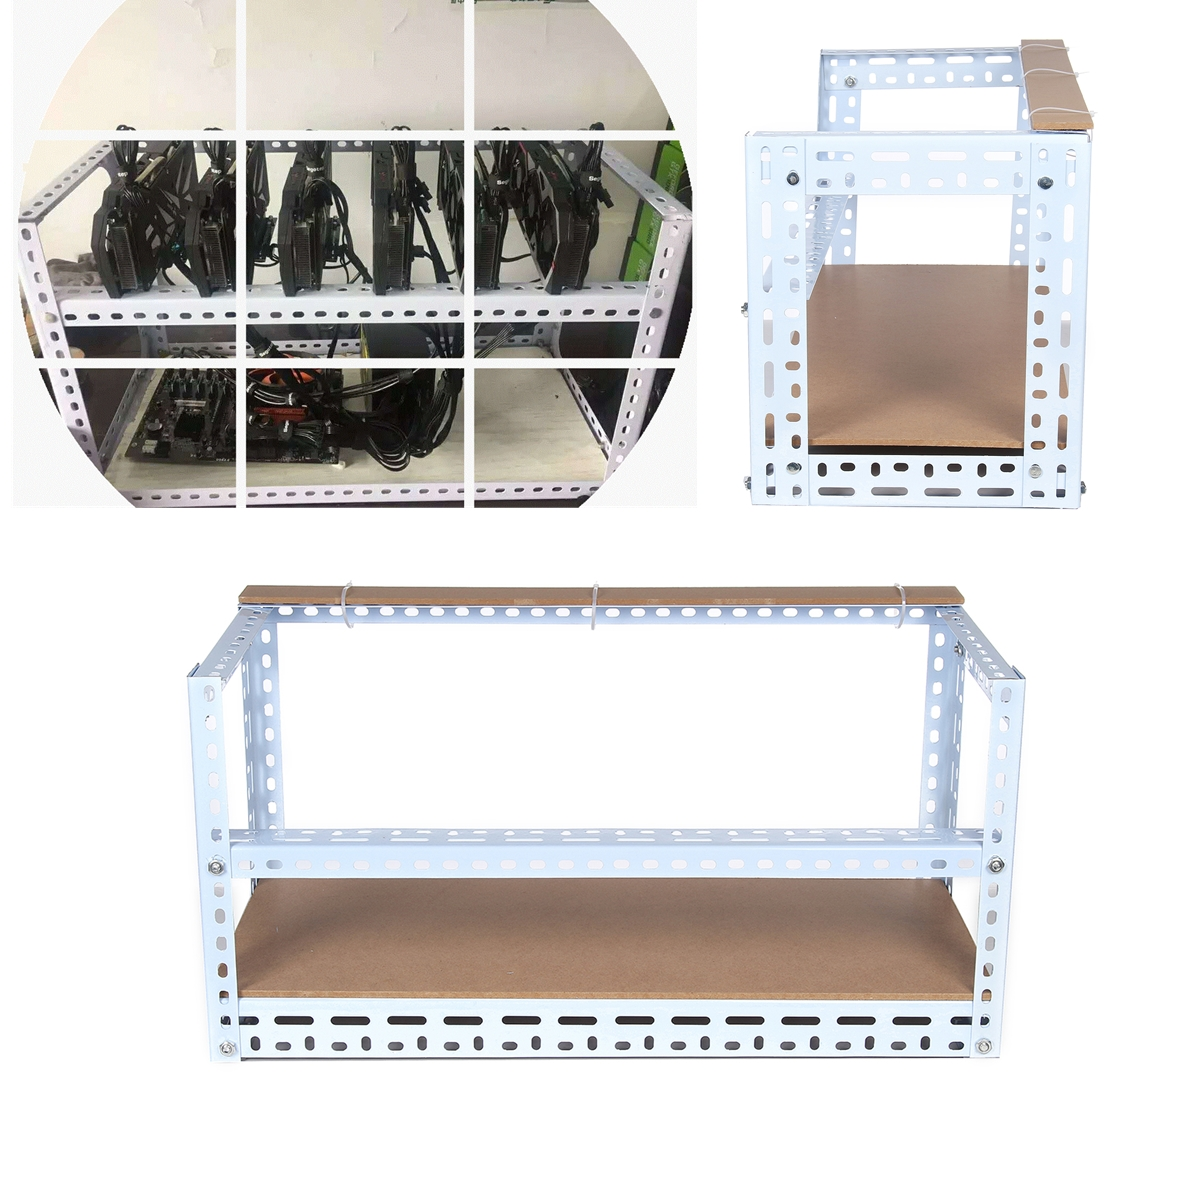 Steel Crypto Coin Bitcoin Mining Rig Frame Case Shelf Set For 6 Gpu